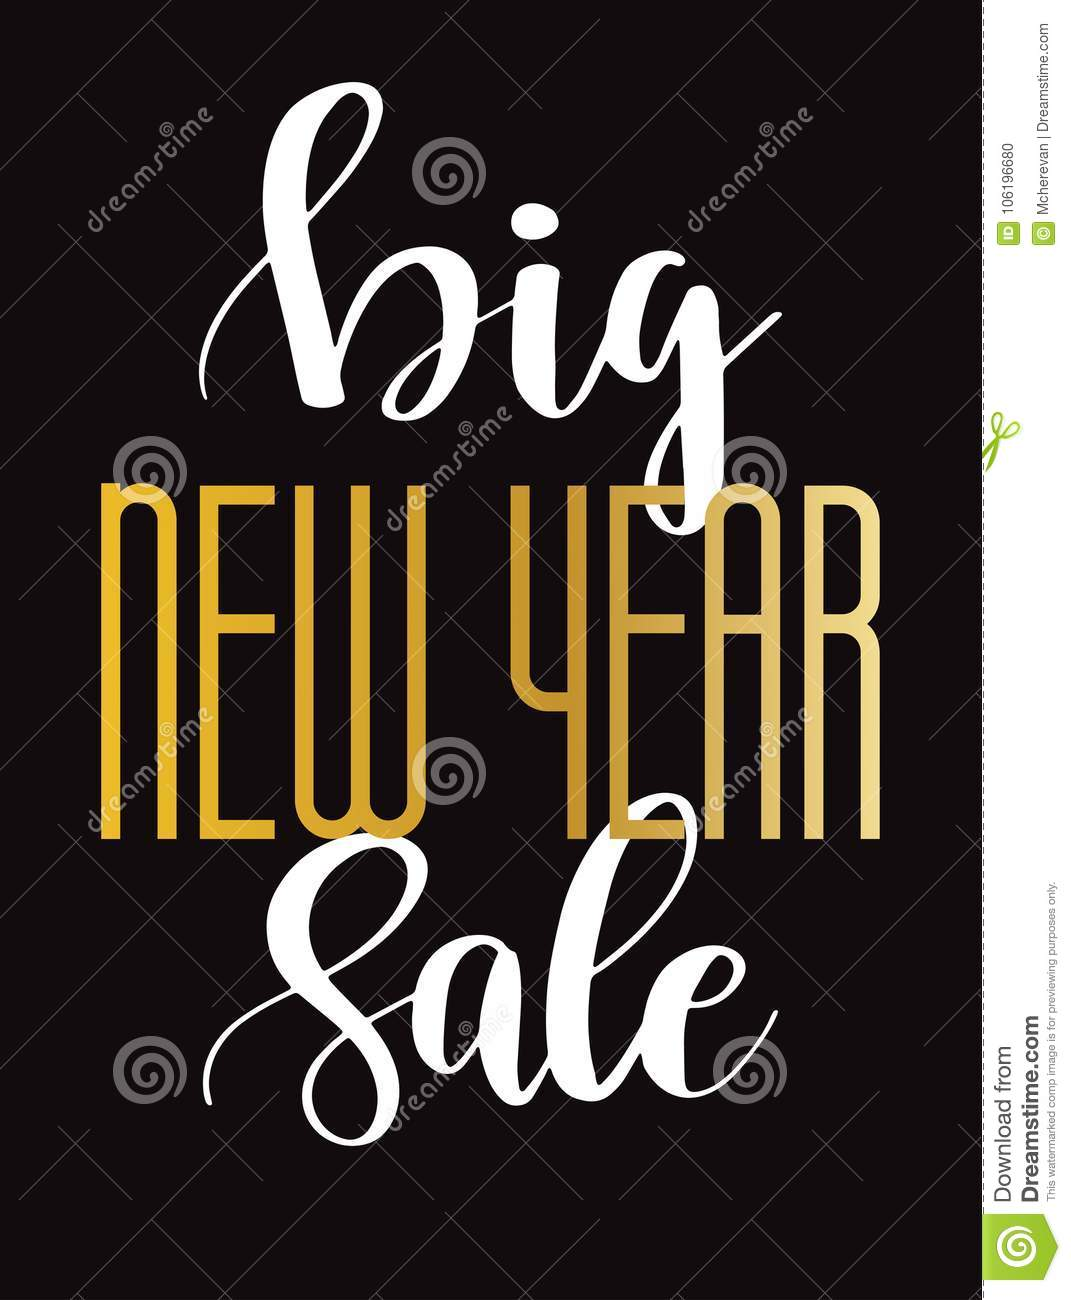 download sale banner background for new year shopping sale stock illustration illustration of card